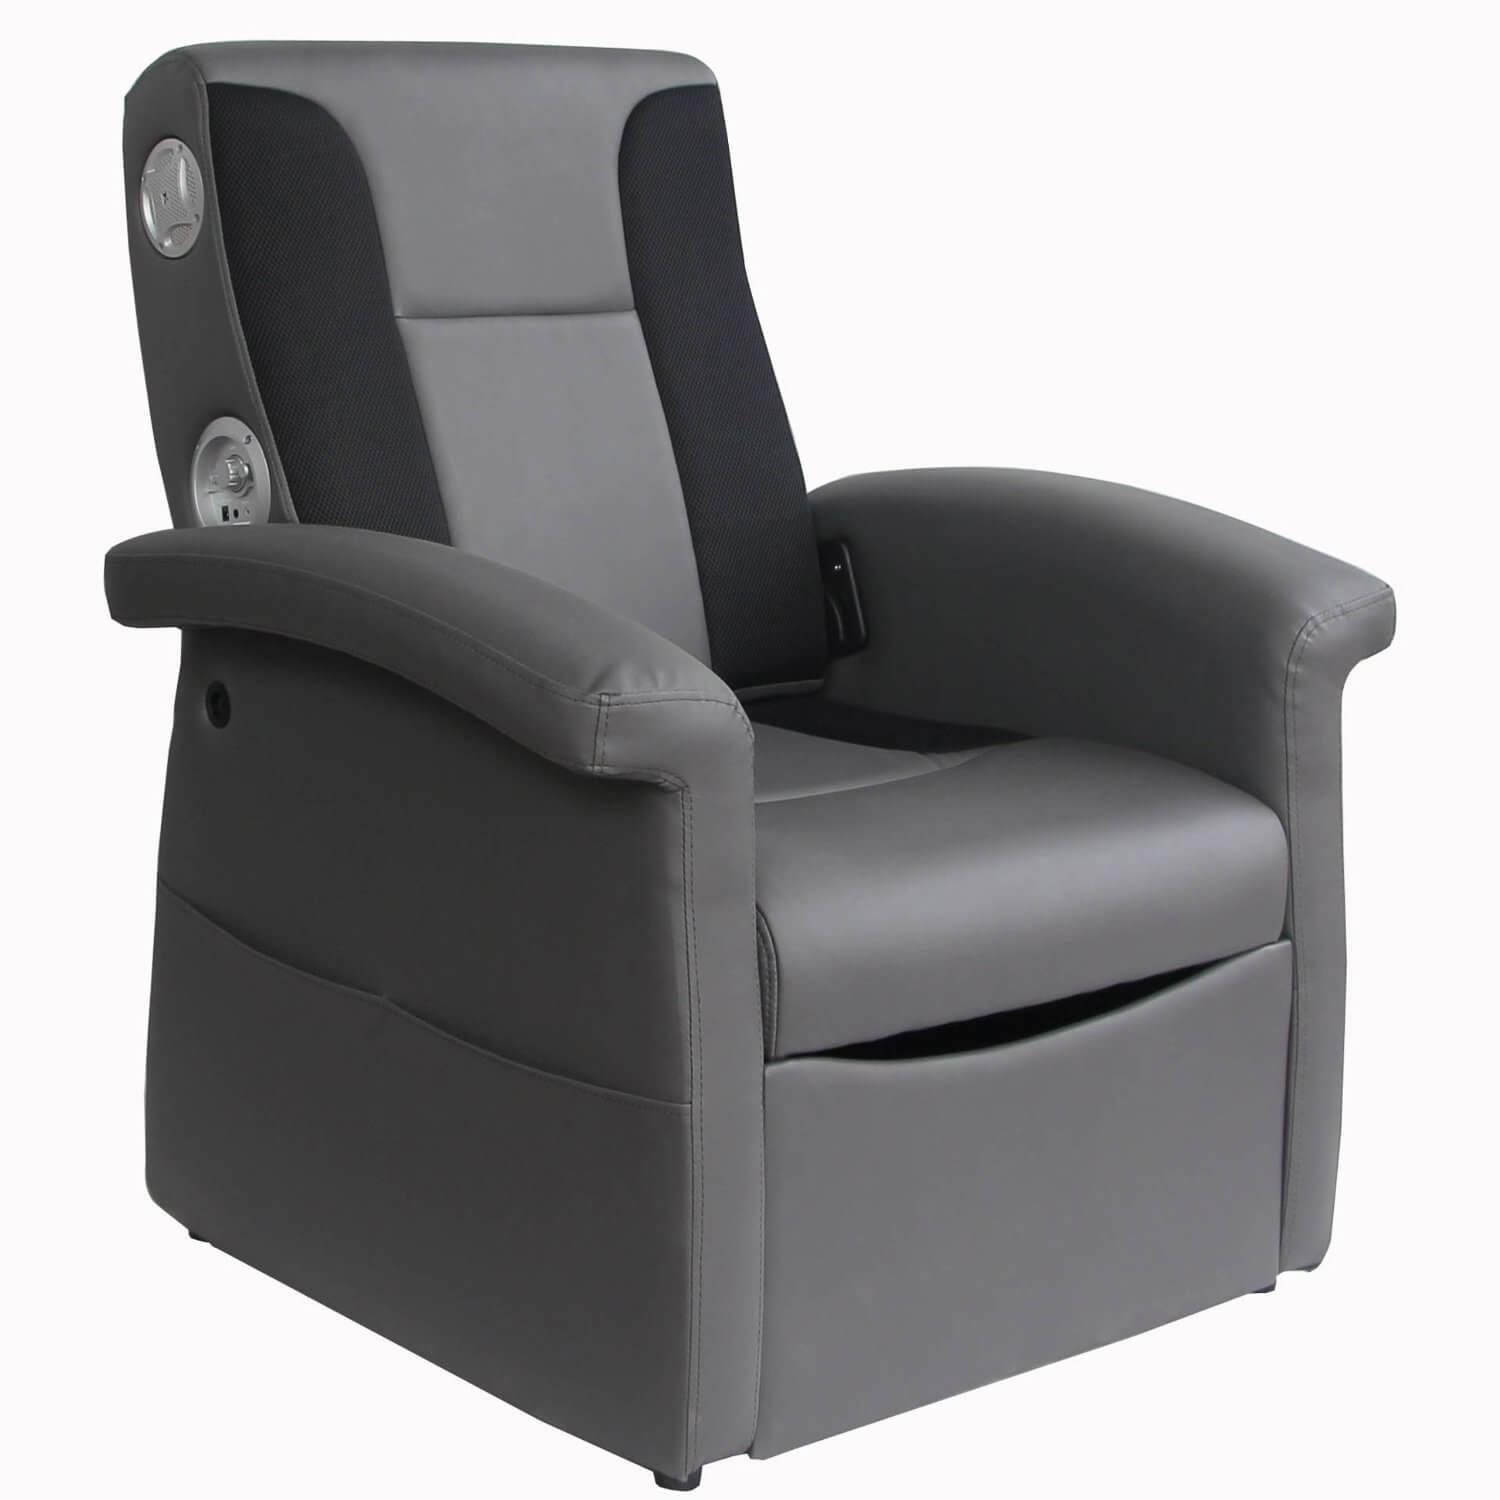 Best Gaming Chairs For Adults – Top 7 Reviews (Jan (Image 7 of 20)